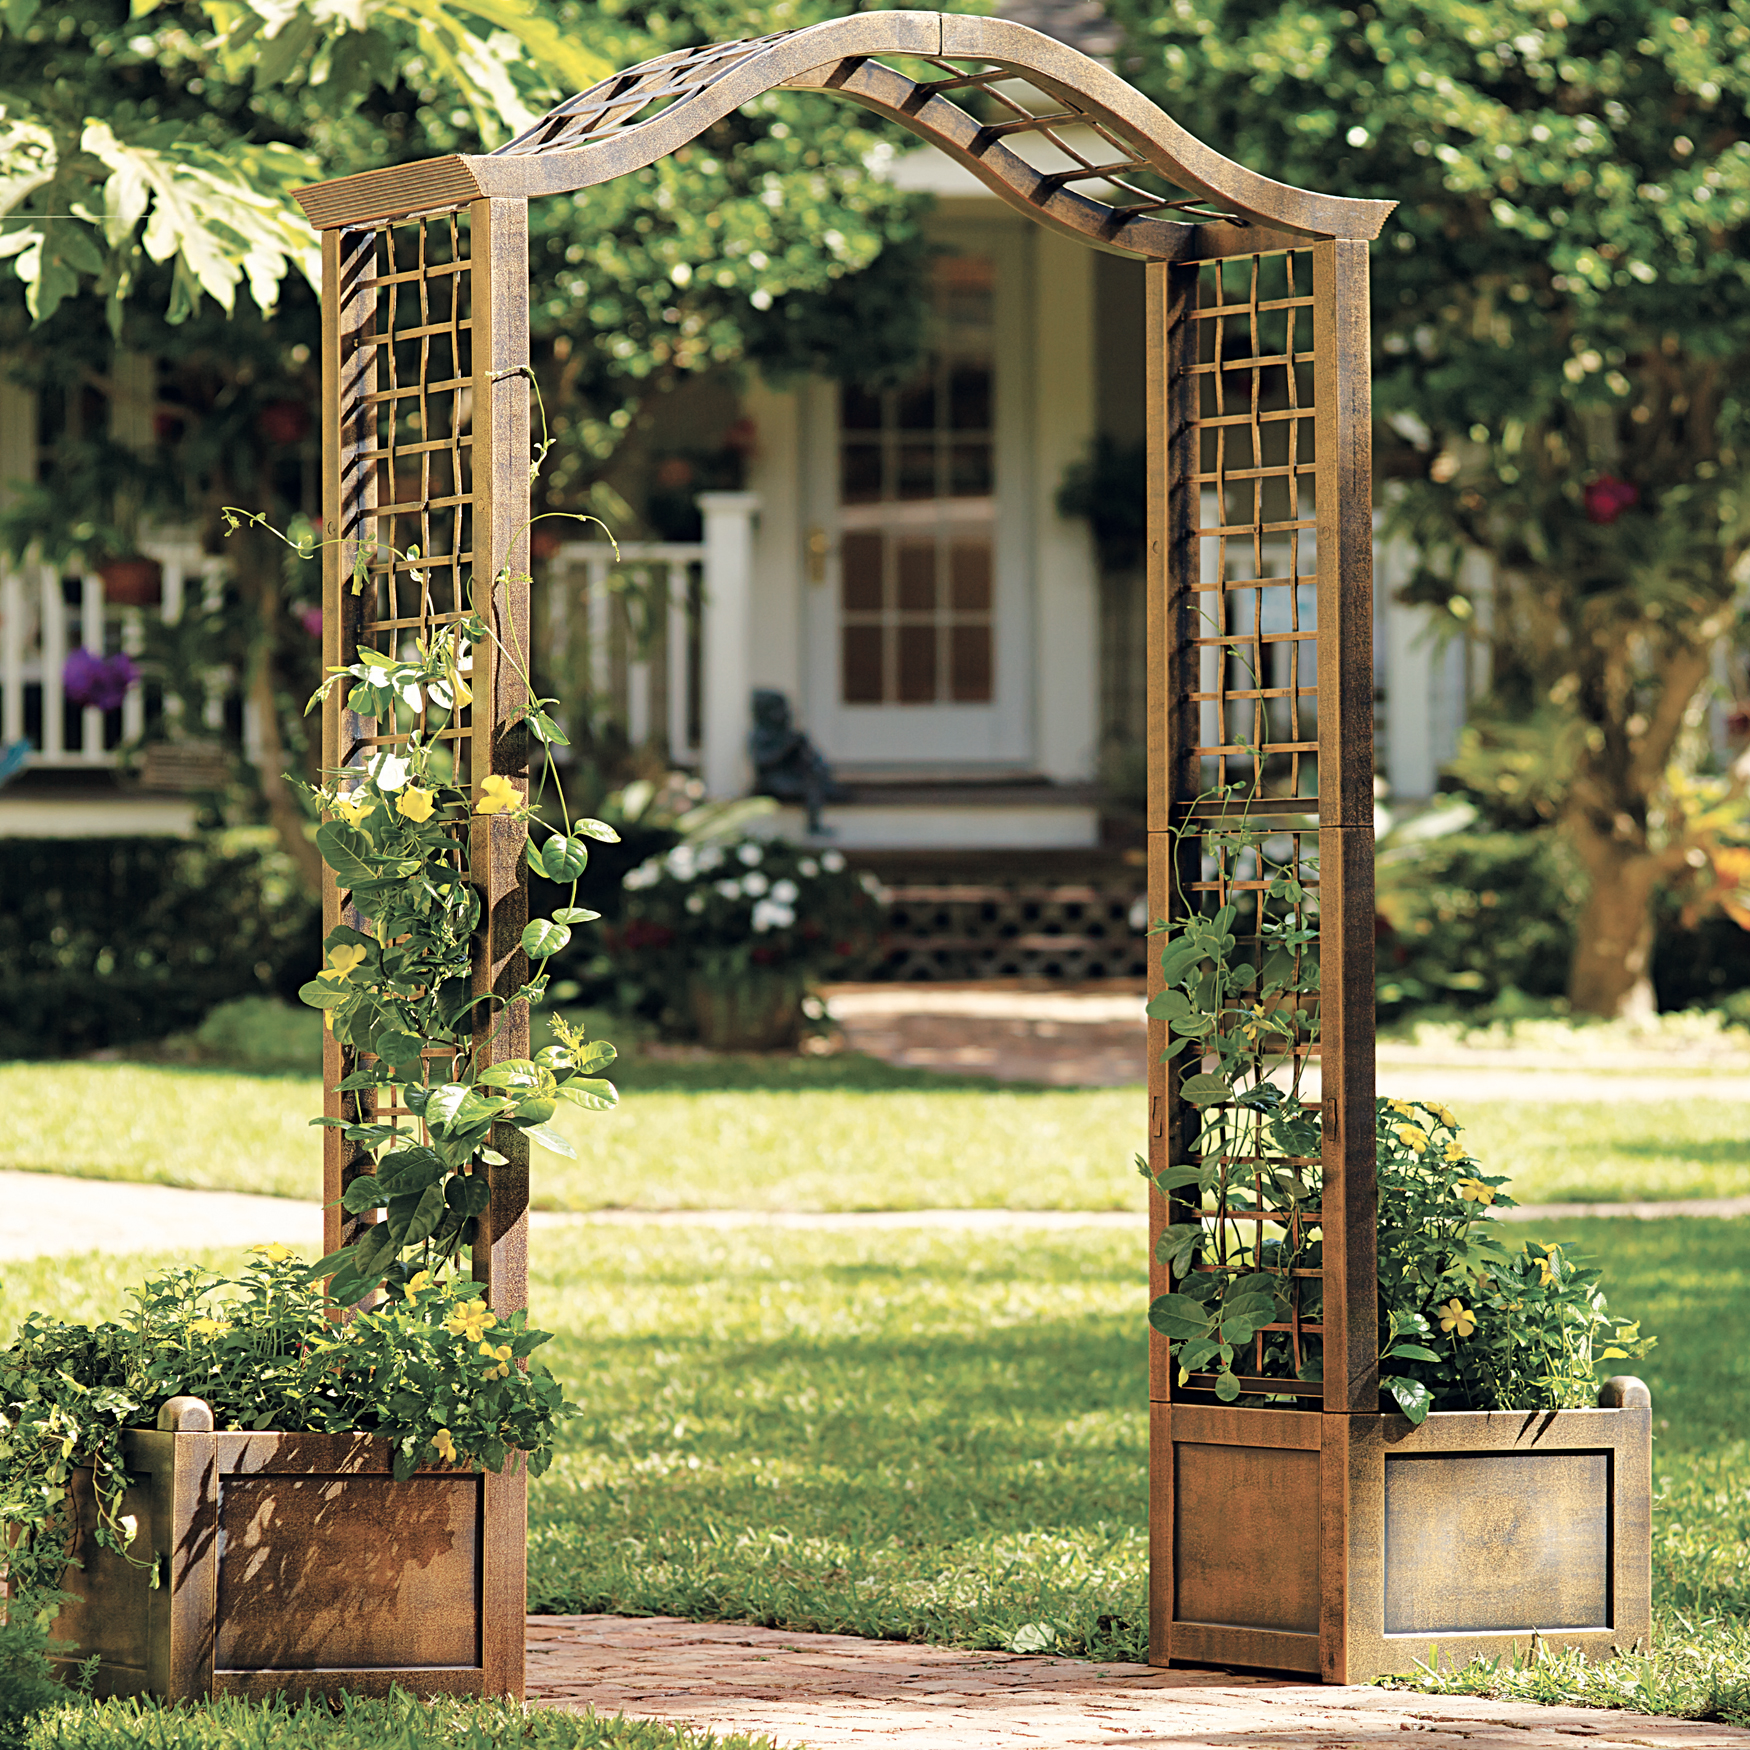 White Metal Wedding Arch Garden Decoration Bridal Party ...  |Outdoor Arch Decorations